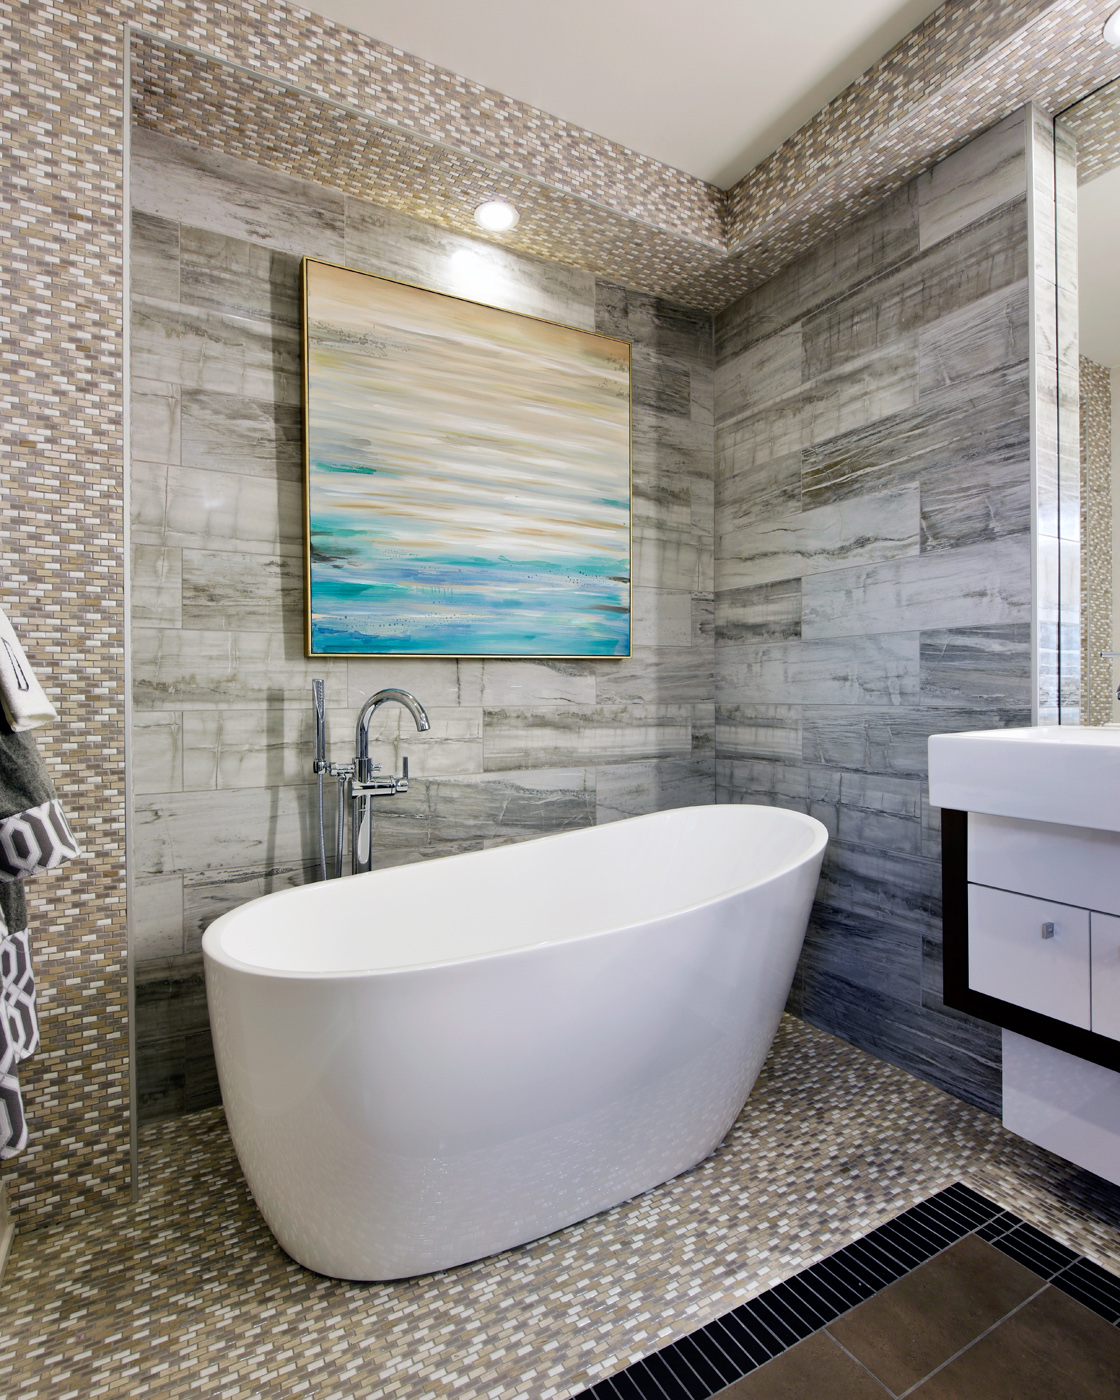 Master Bathroom - Freestanding Bath